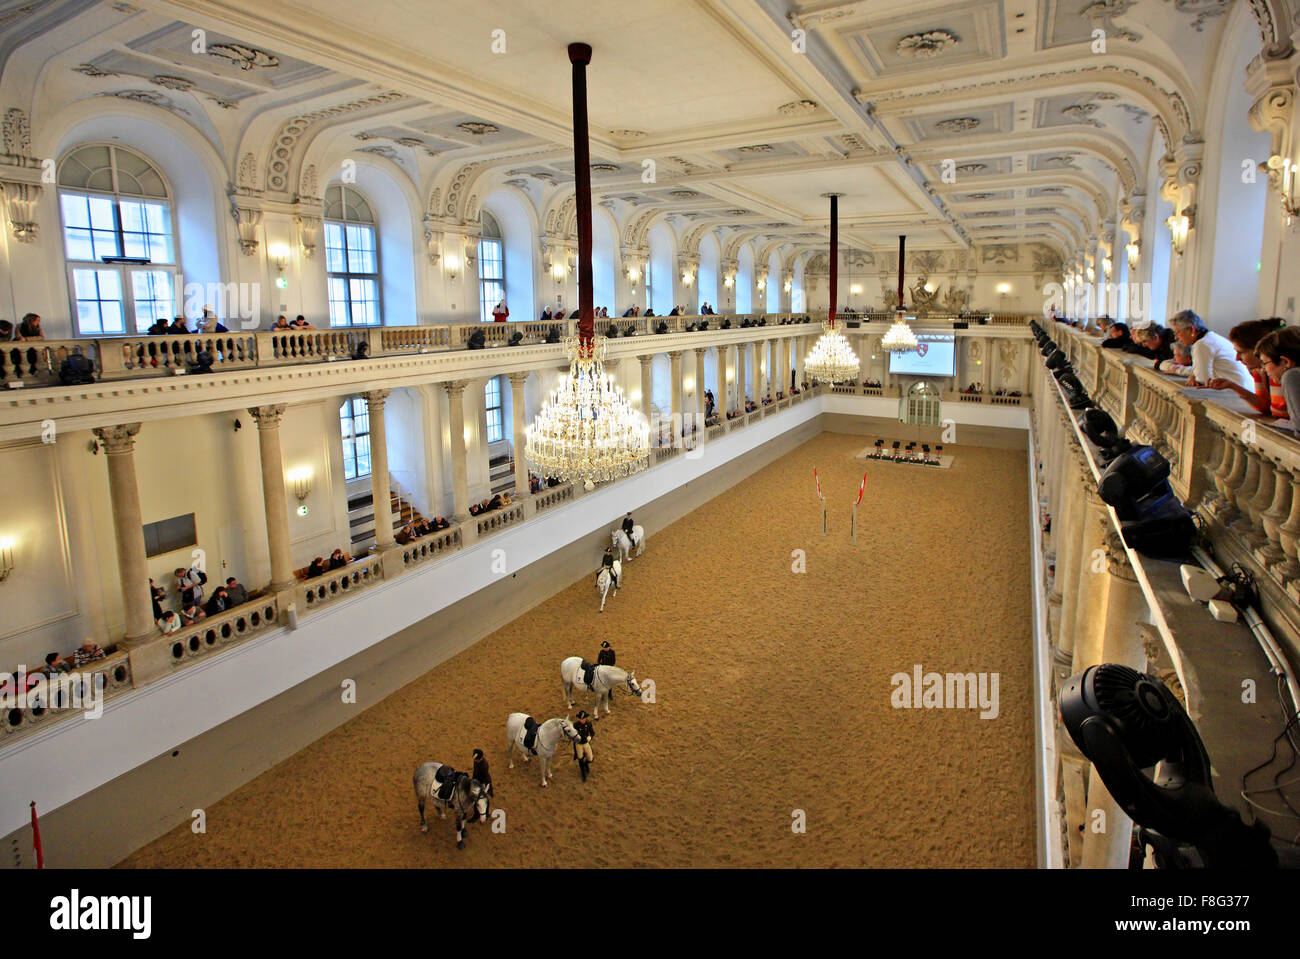 Morning training in the Spanish Riding School, in Hofburg palace, Austria, Vienna. - Stock Image